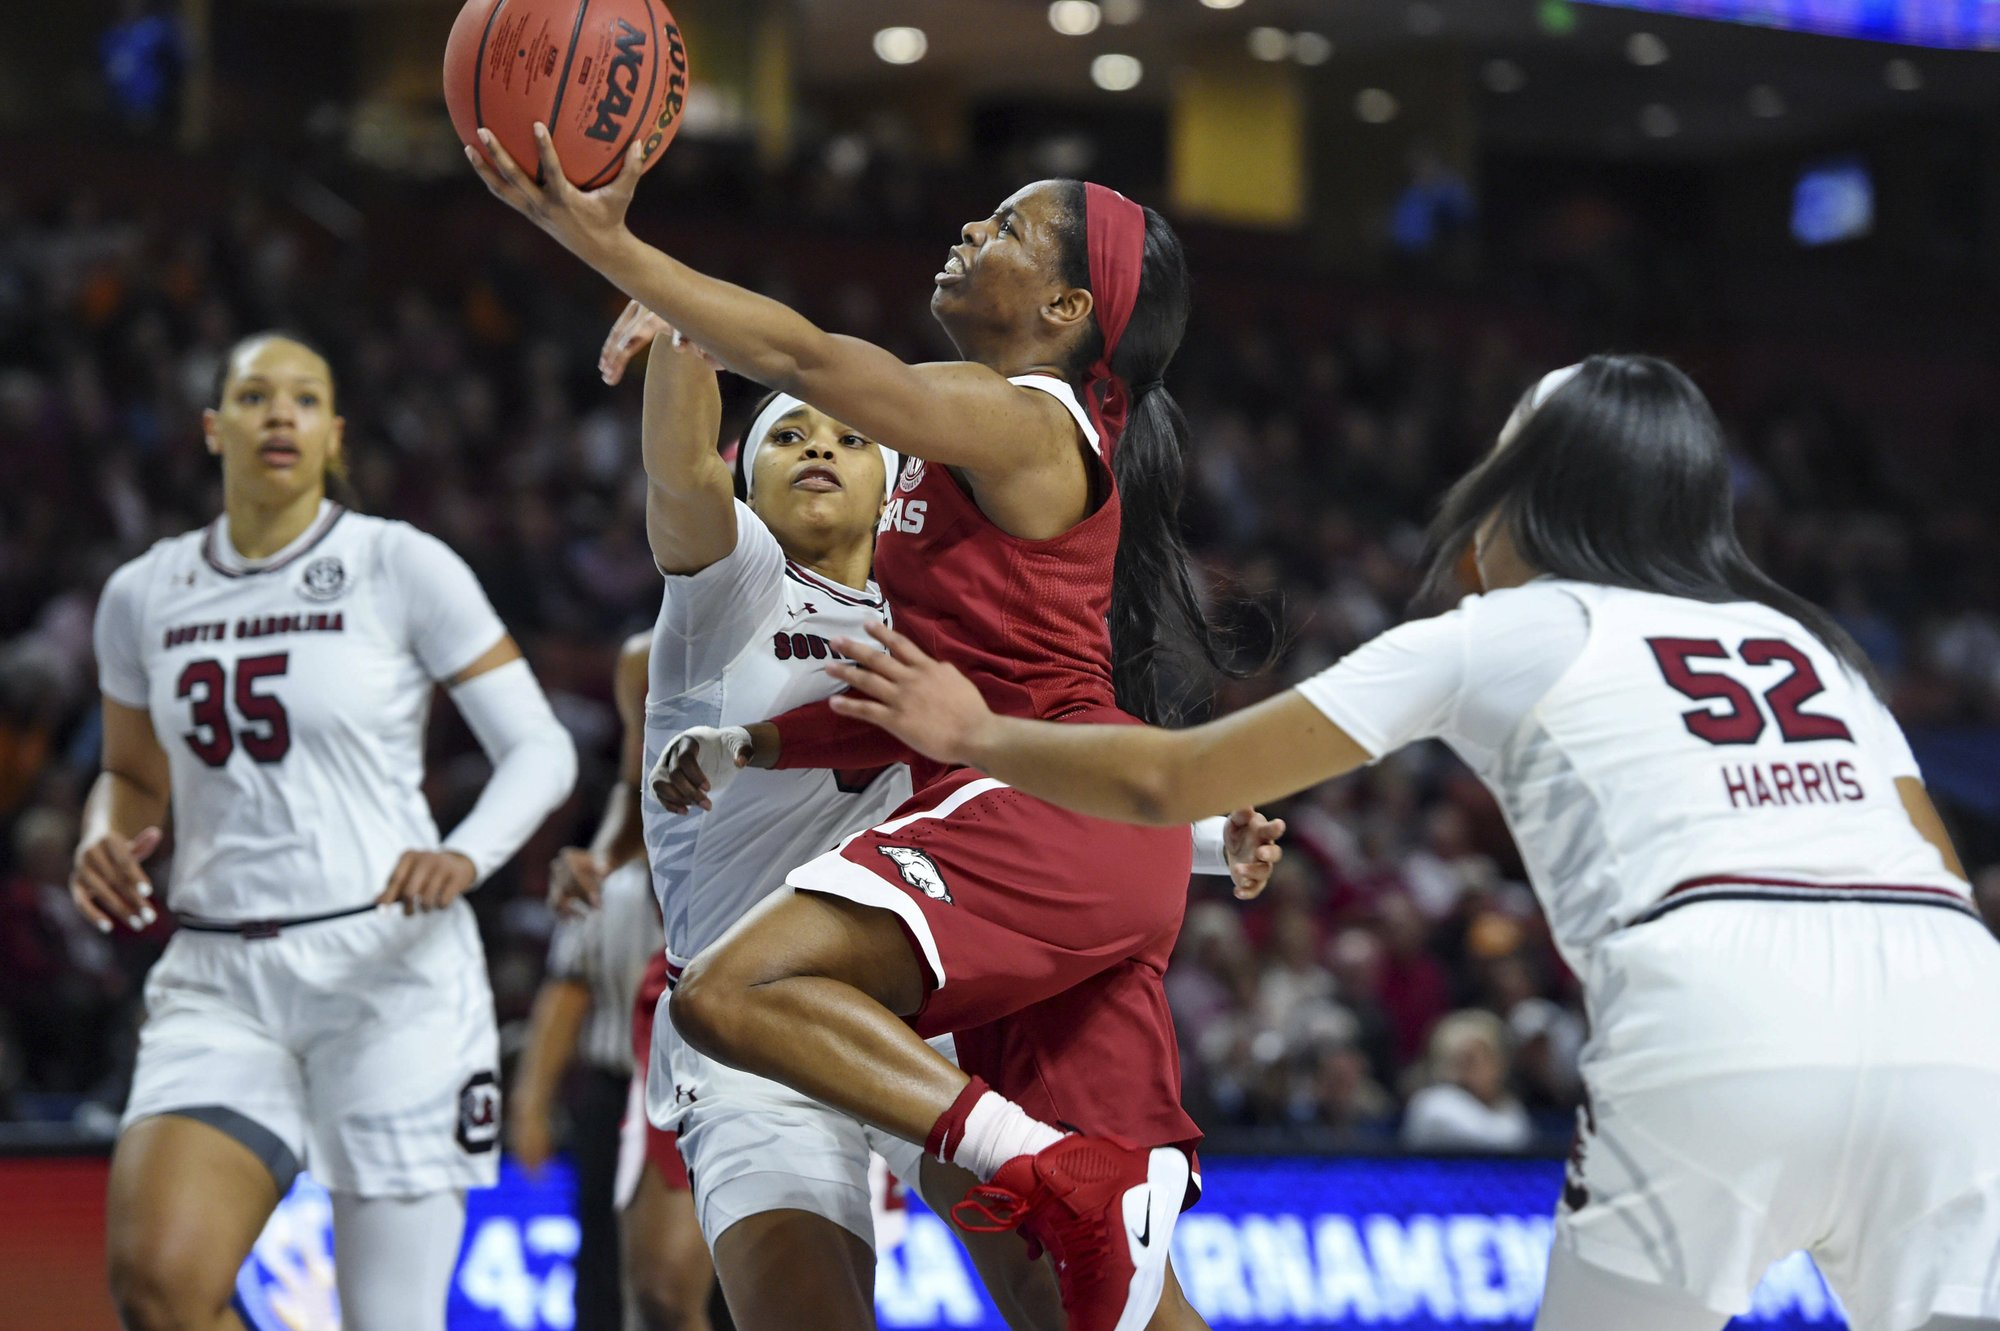 South Carolina looks to erase SEC disappointment in NCAAs